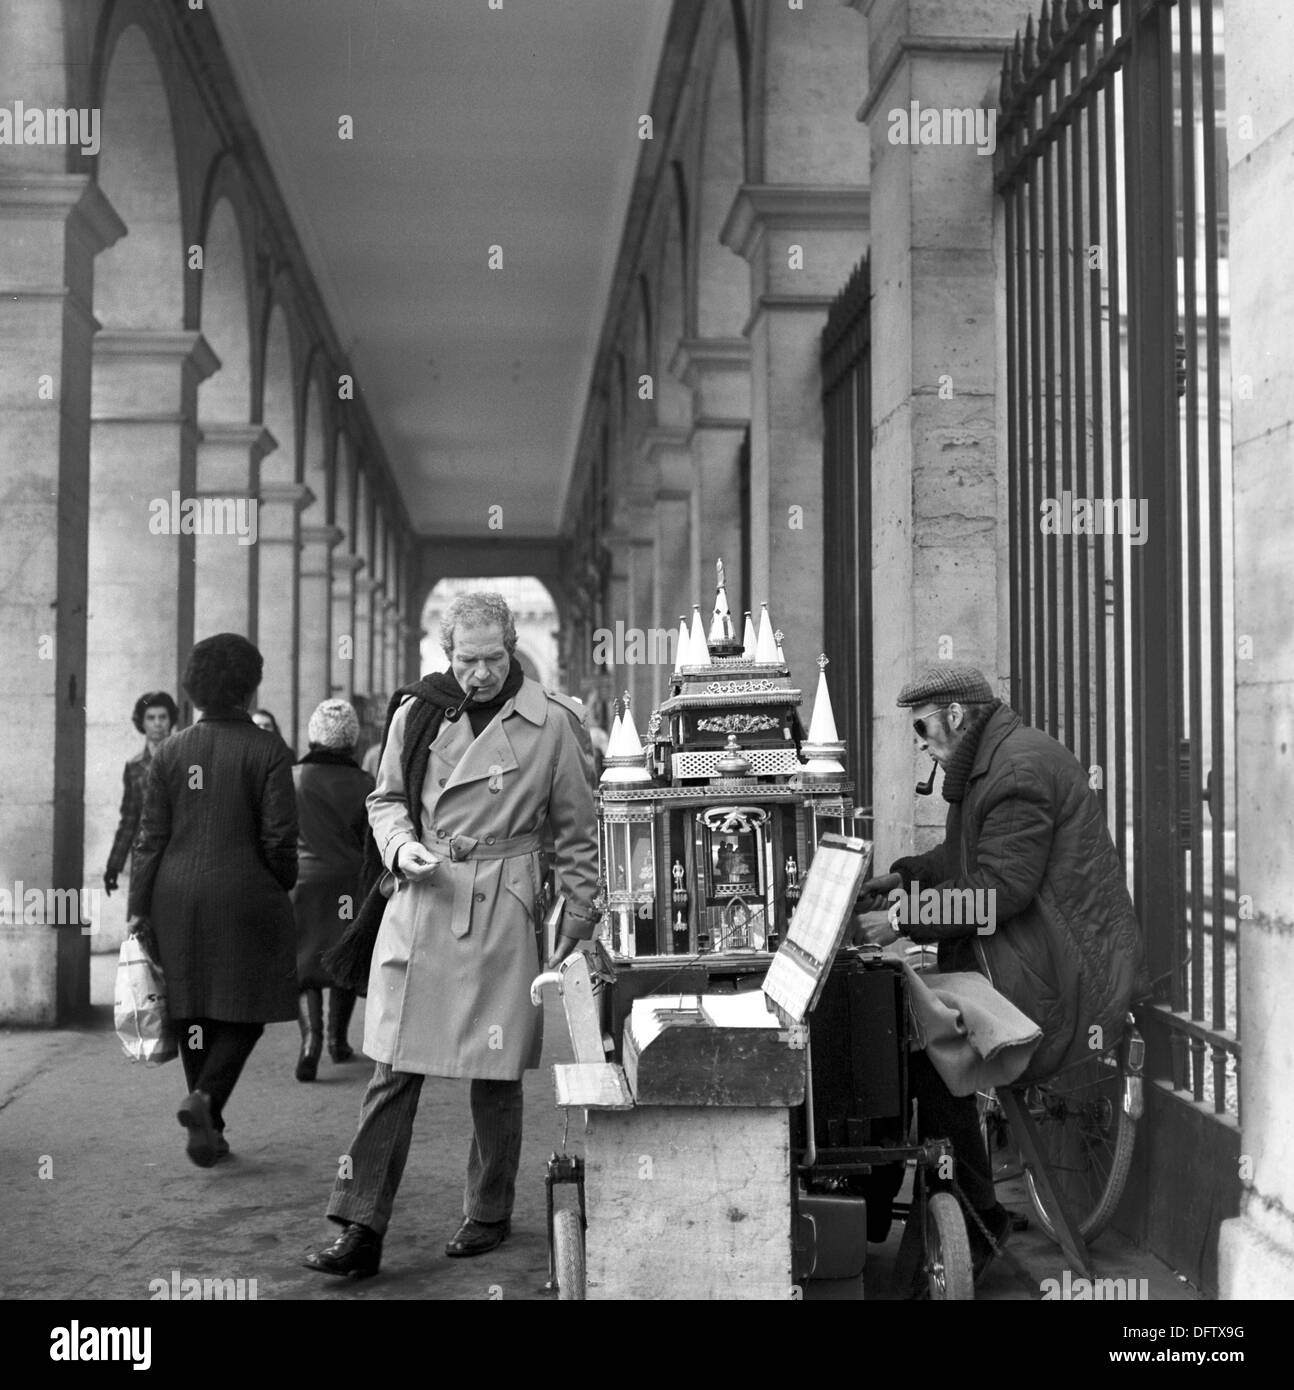 A showman offers horoscopes to passers-by in Paris, France, in November 1970. Photo: Wilfried Glienke - Stock Image